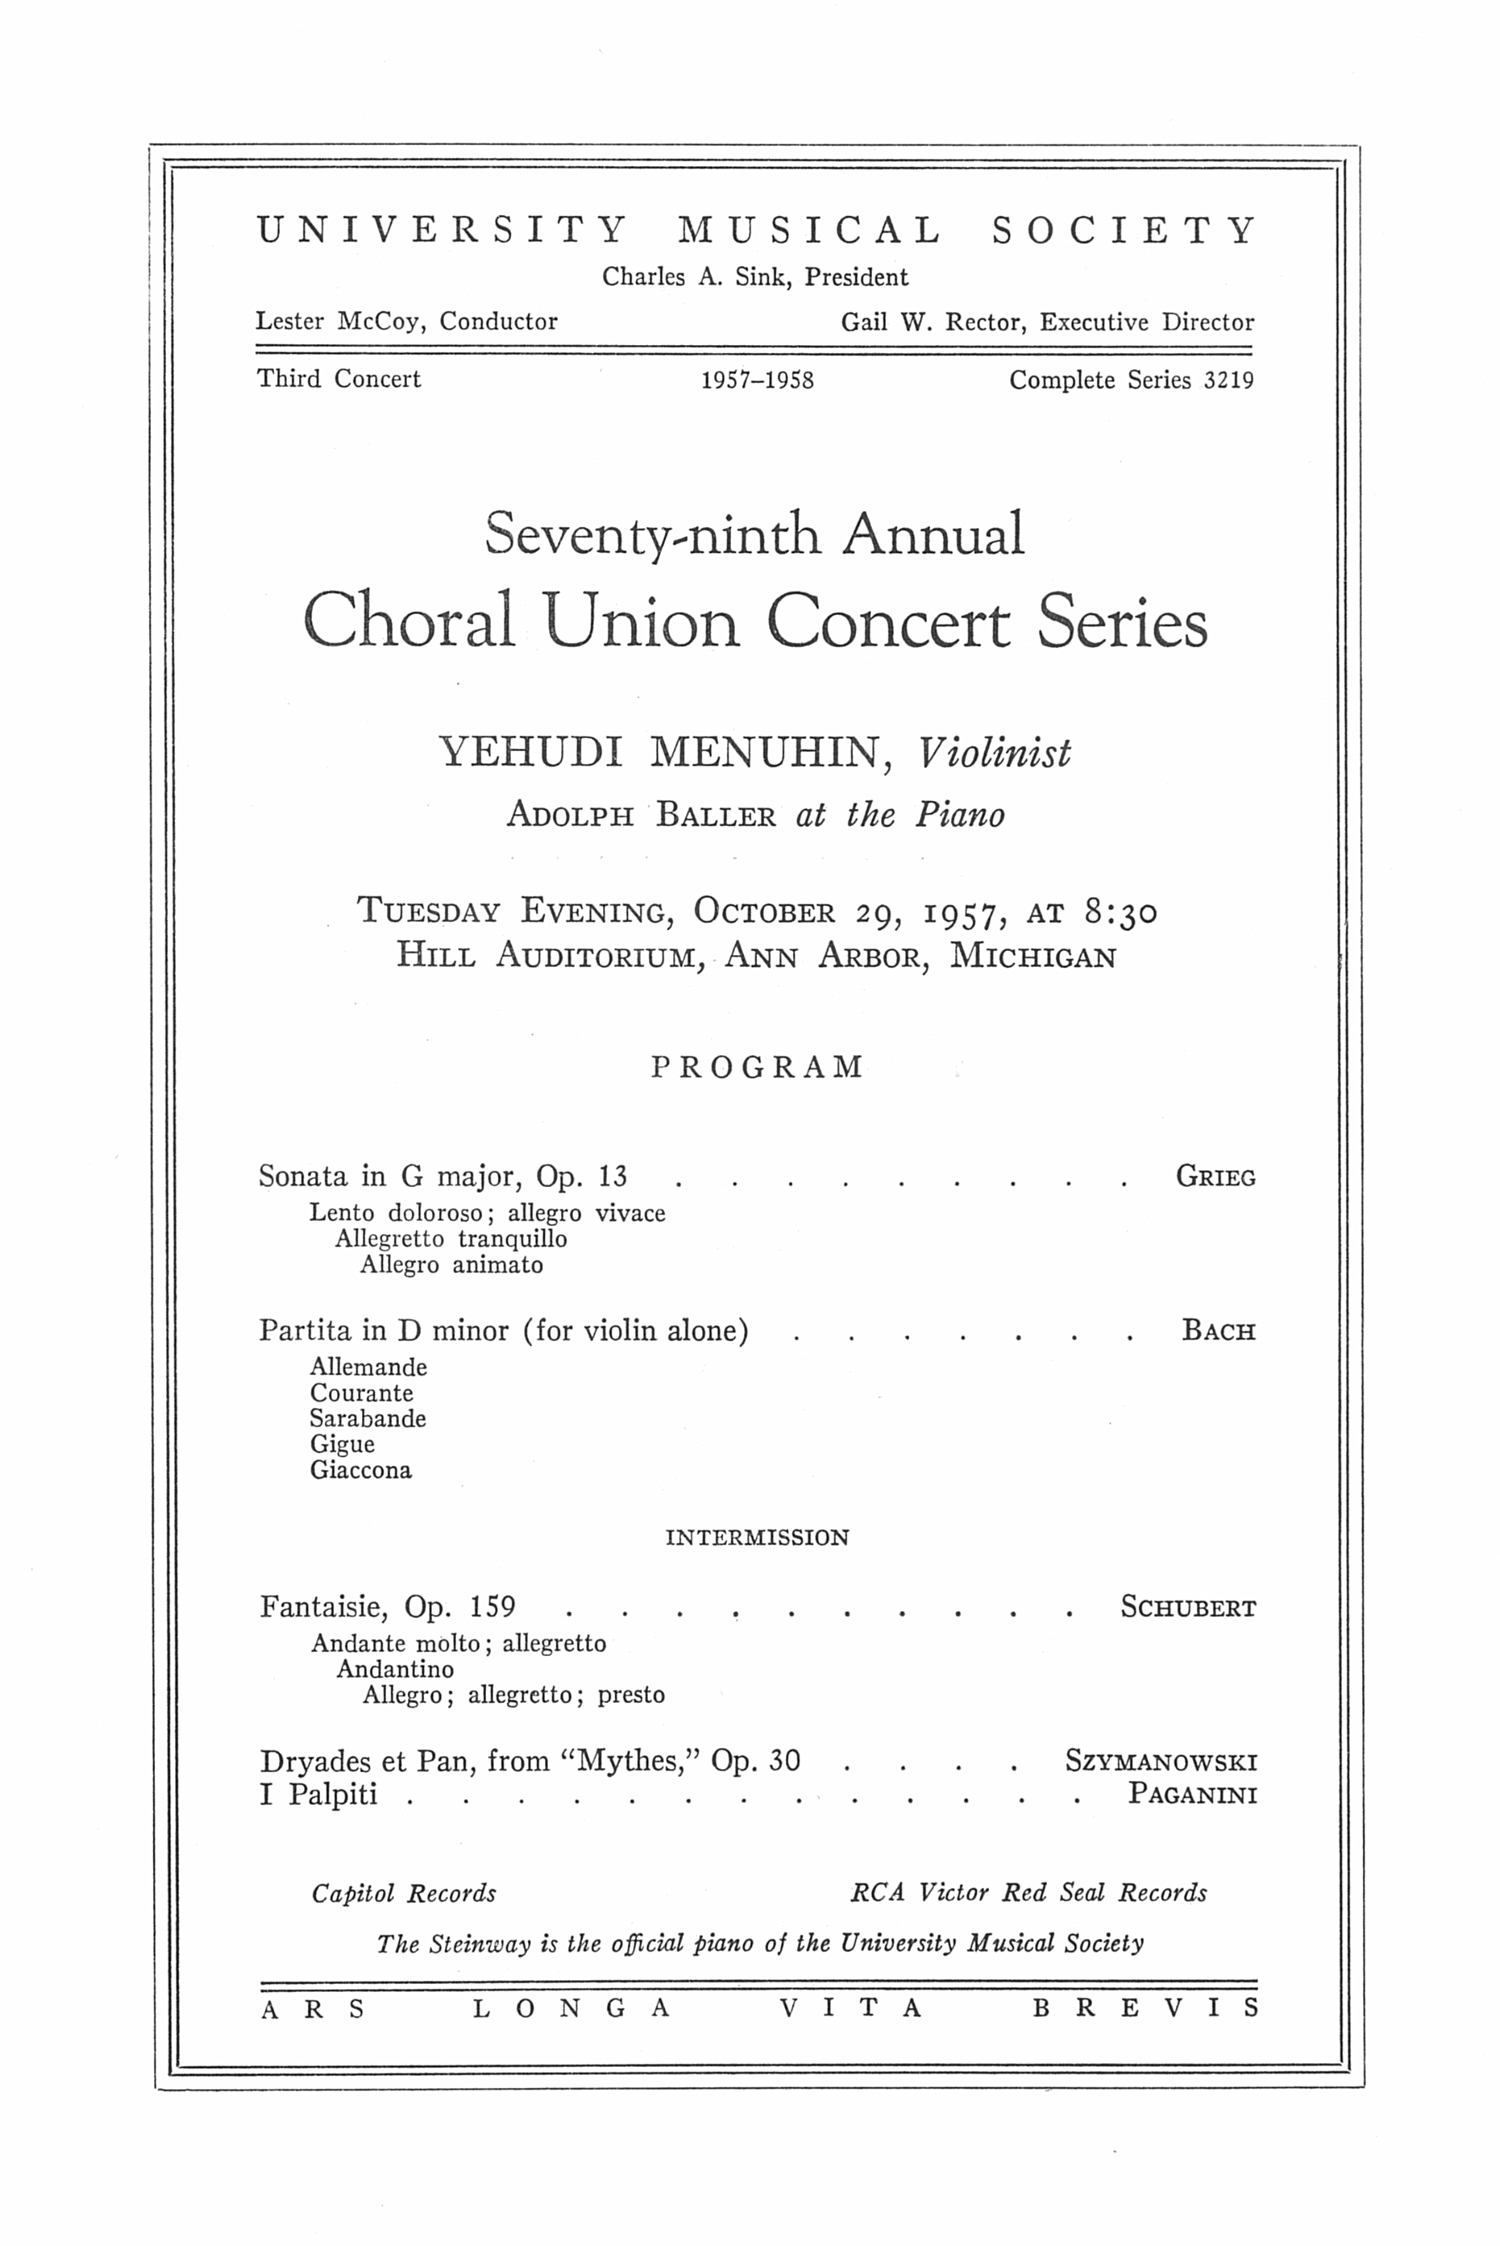 UMS Concert Program, October 29, 1957: Seventy-ninth Annual Choral Union Concert Series -- Yehudi Menuhin image